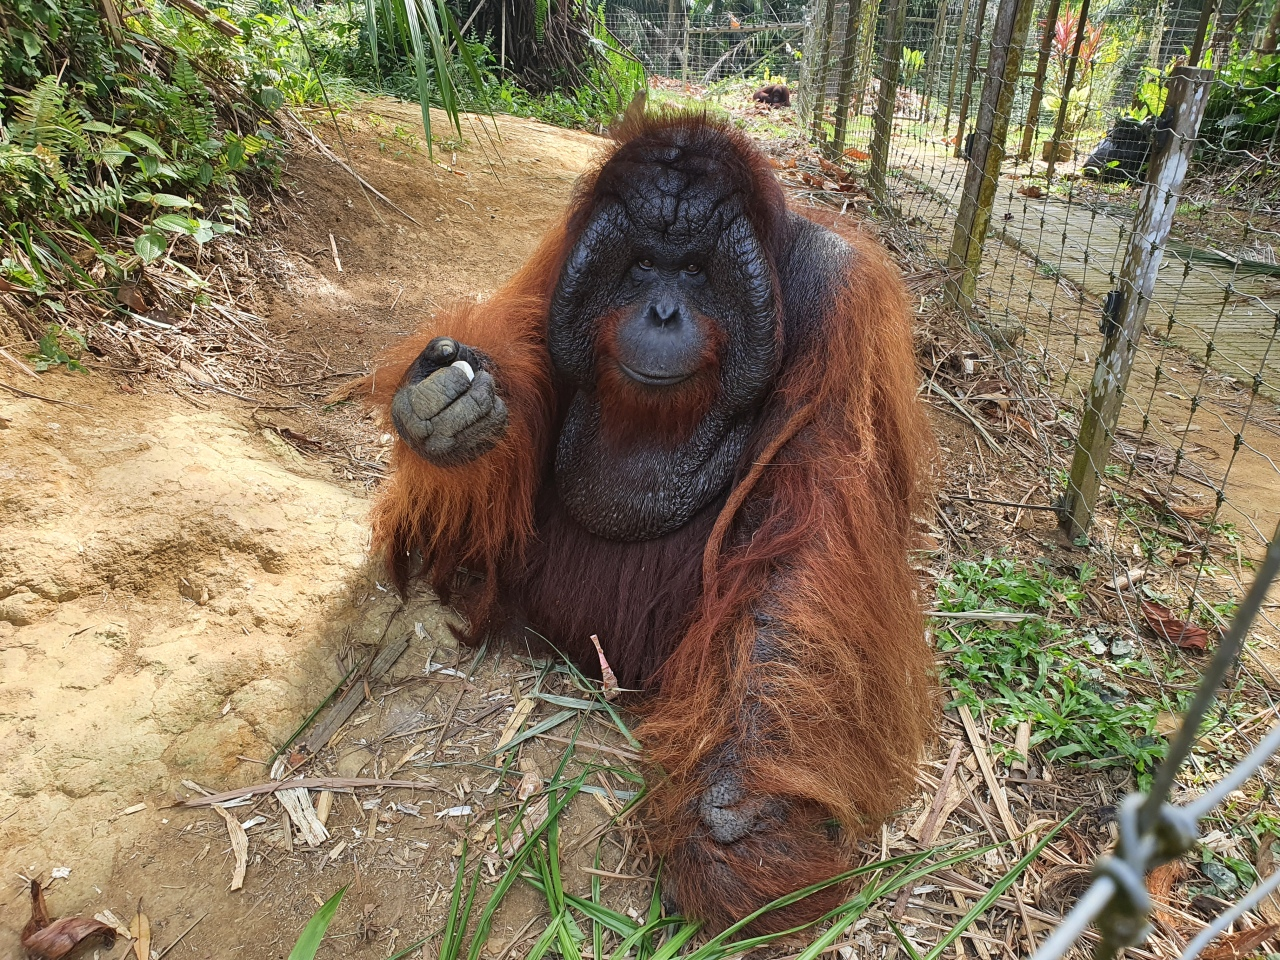 Day 186: A day out with the orangutans